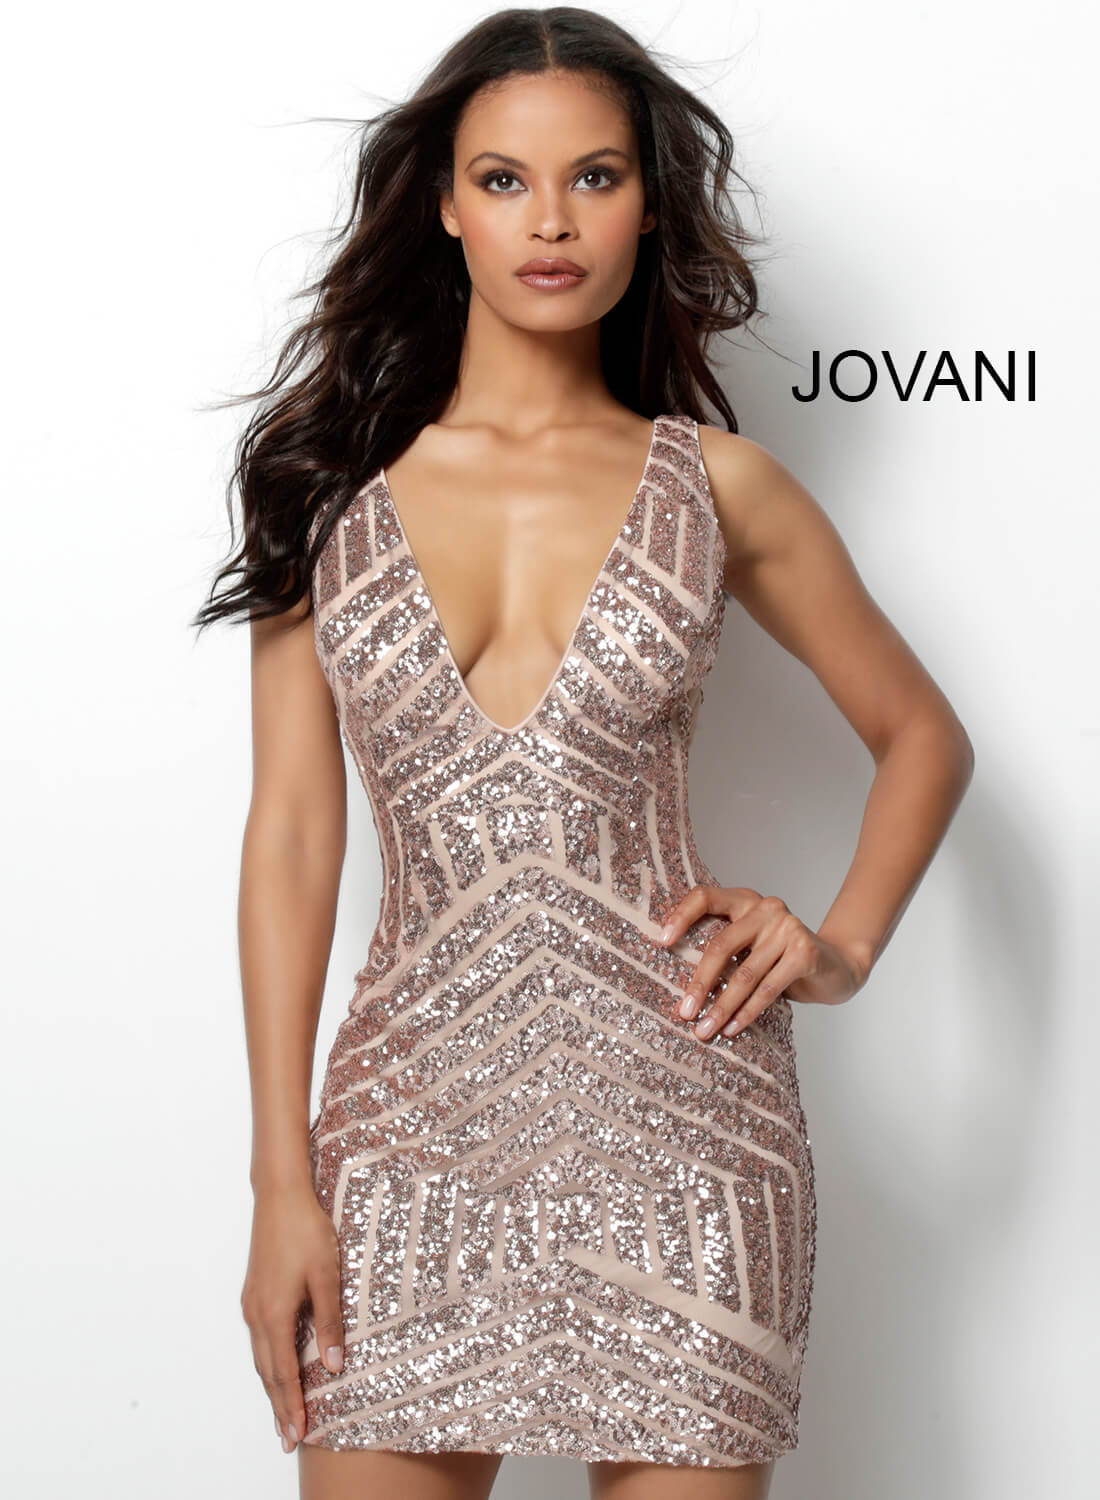 Jovani rose gold plunging neck fitted dress 63899 on mobile 5